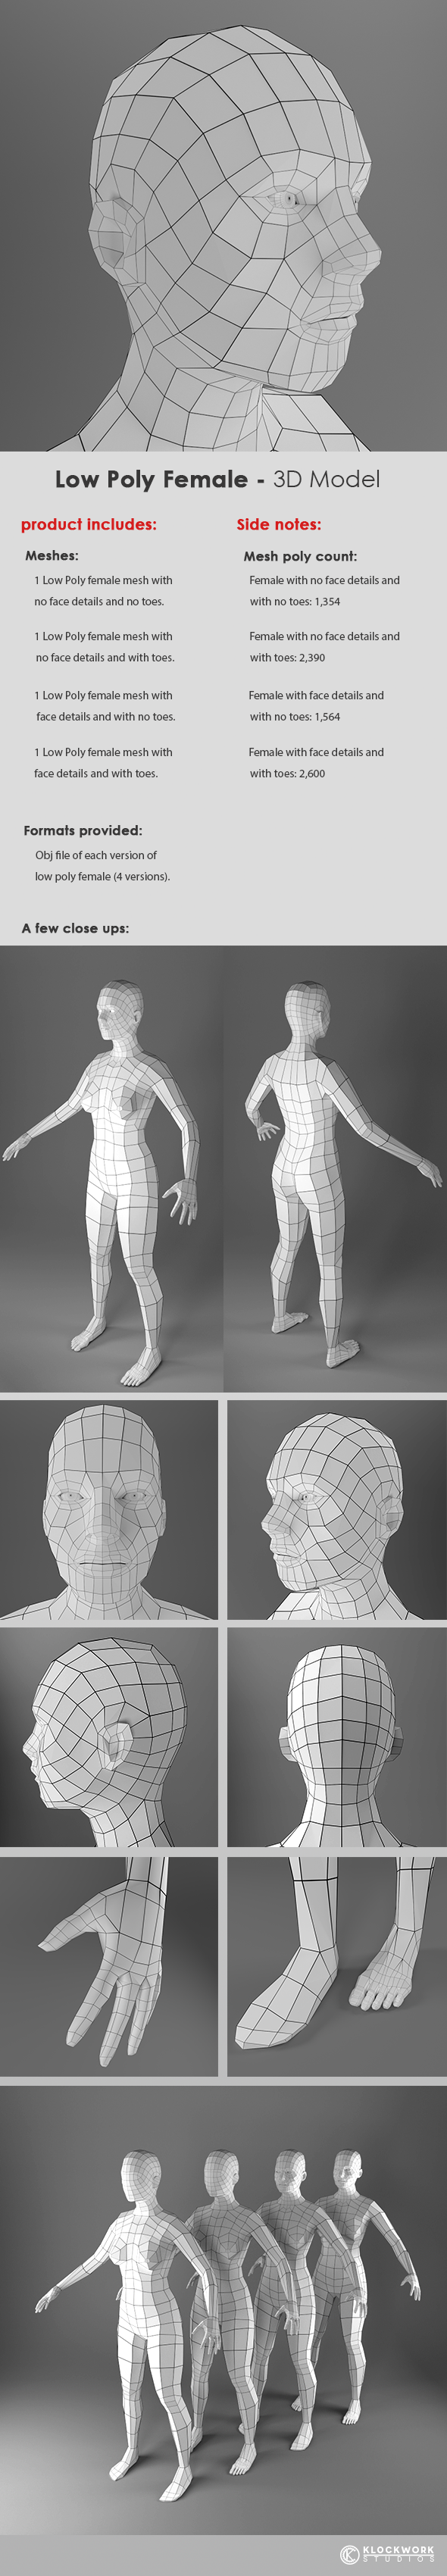 Low Poly Female Base Mesh - 3DOcean Item for Sale